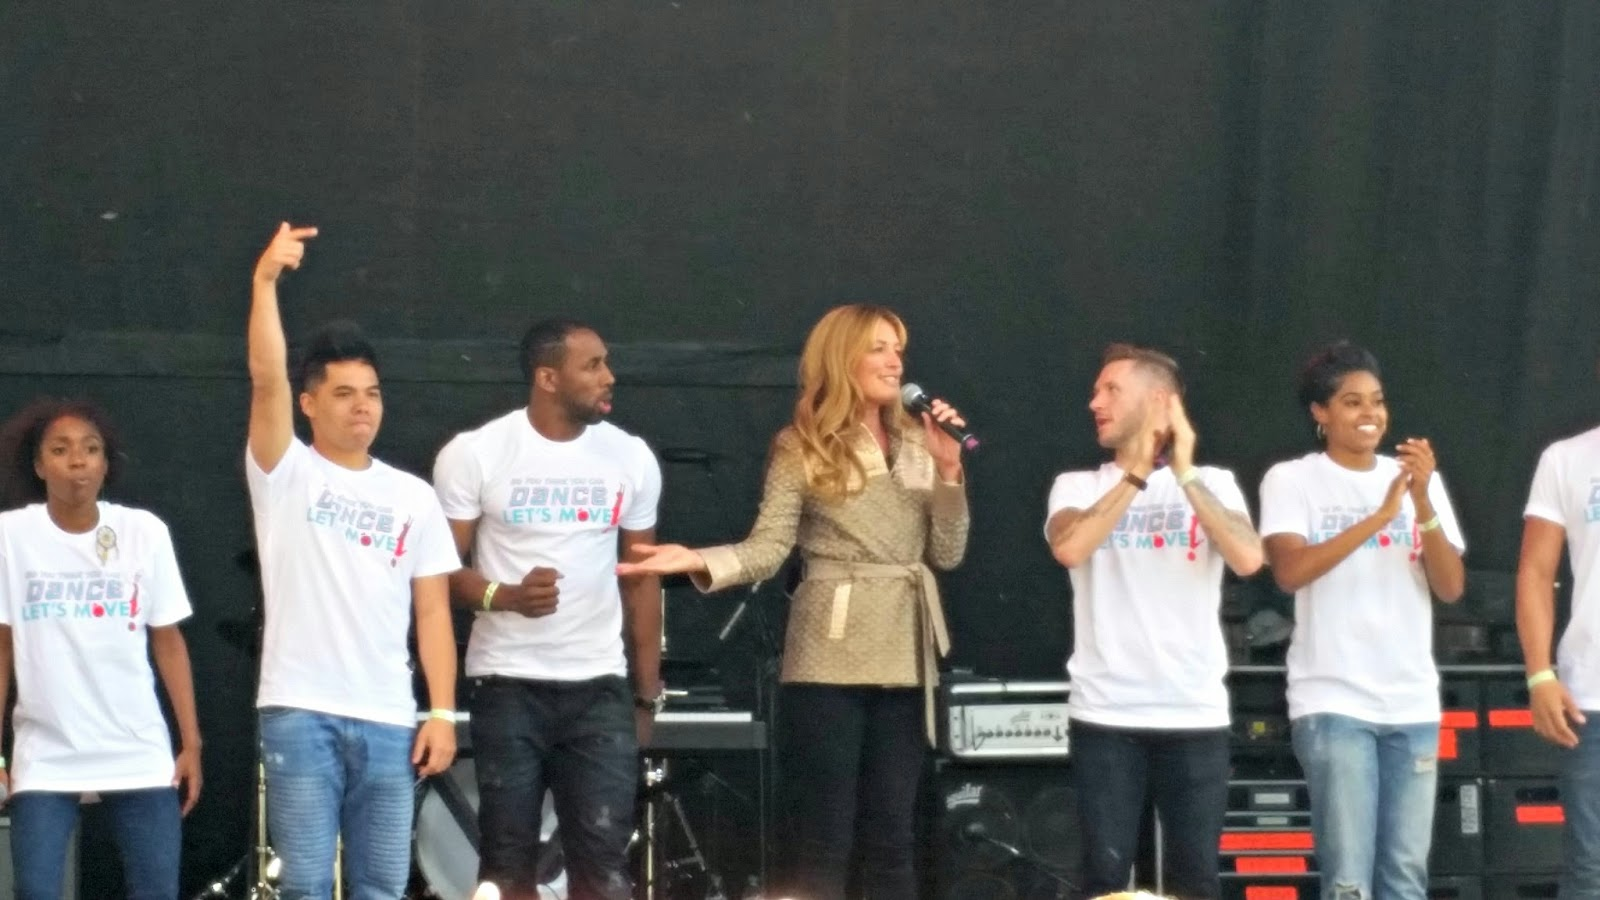 Cat Deeley, 2015 White House Easter Egg Roll, DC Monuments, Michelle Obama, President Obama, Travis Wall, Twitch